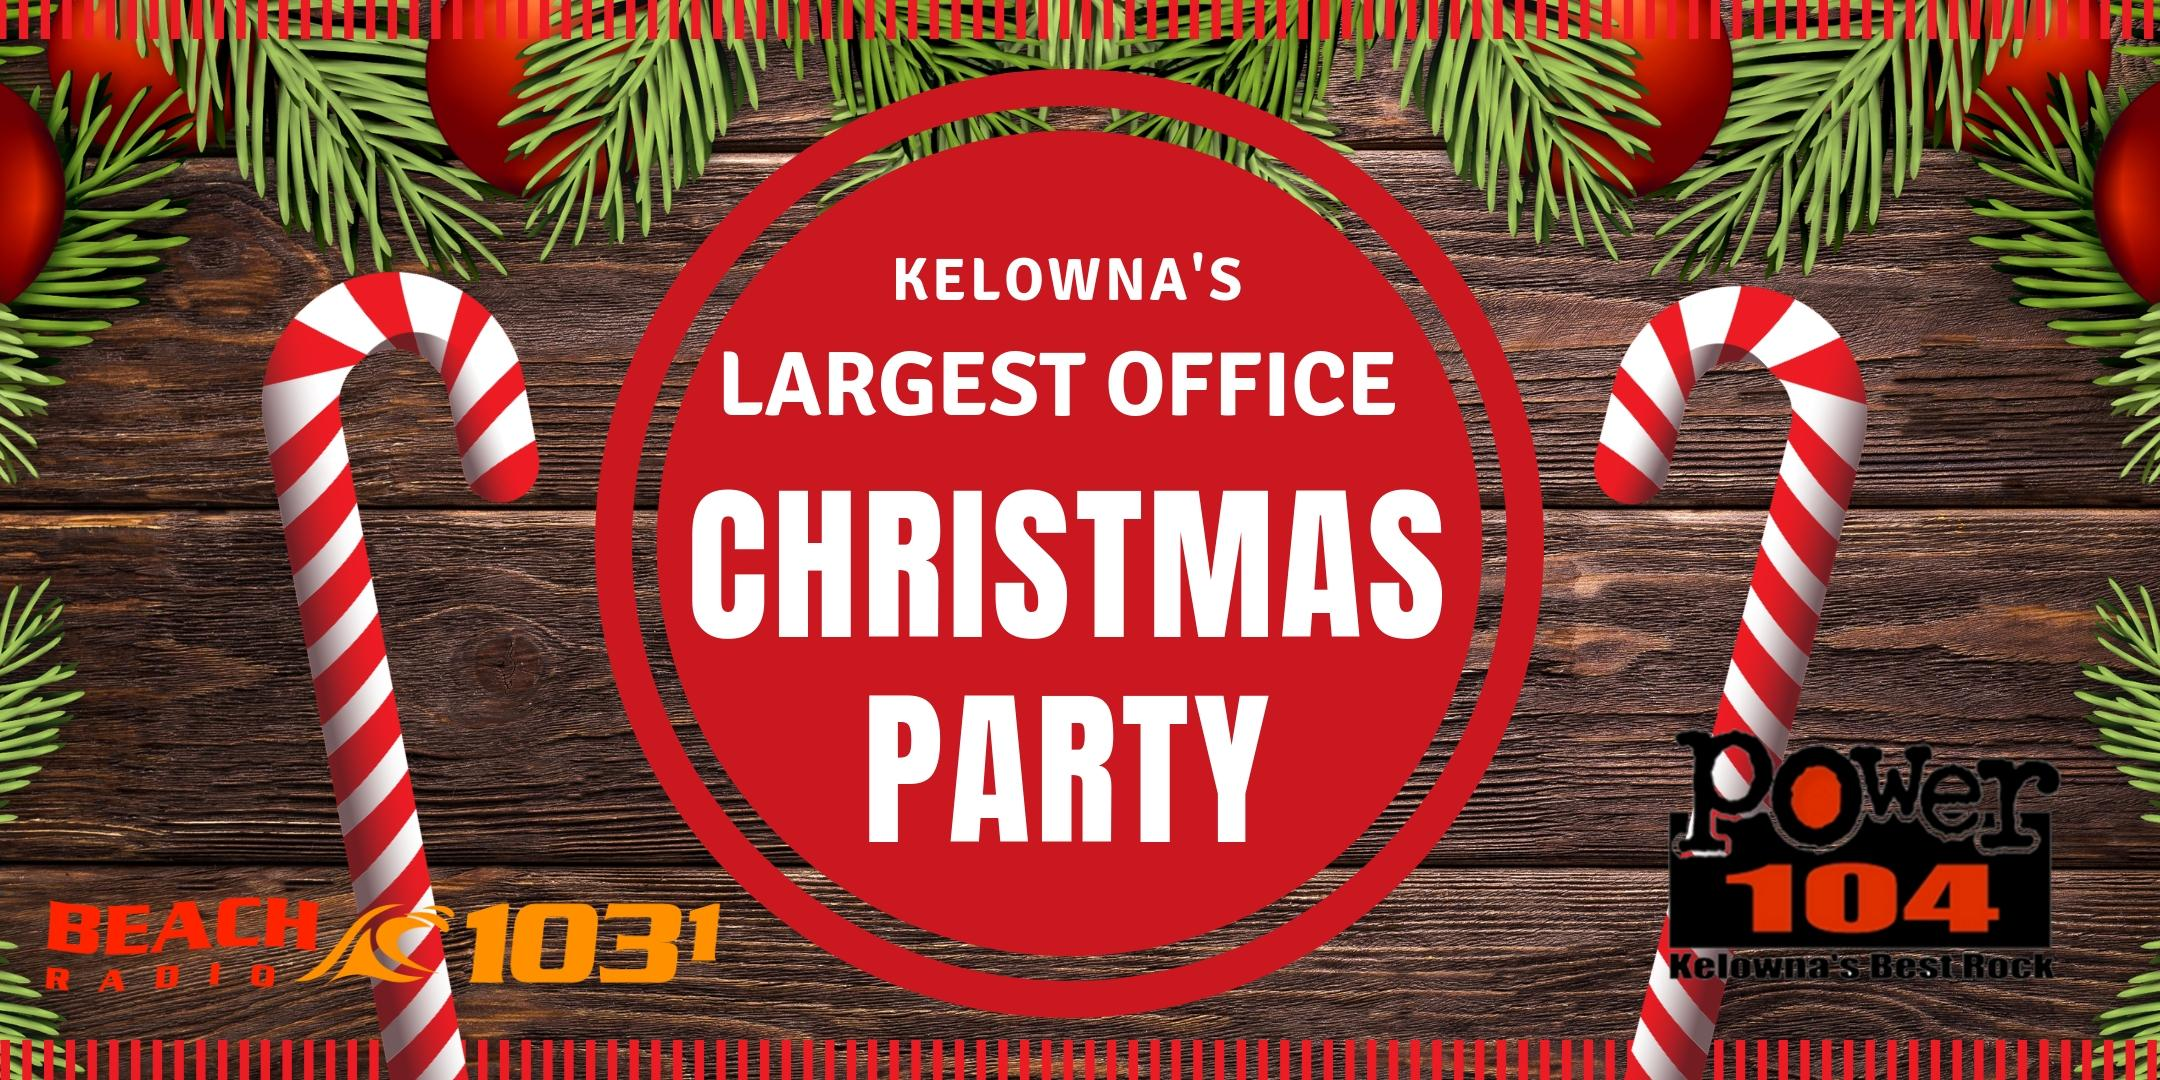 Kelowna's Largest Office Christmas Party - LUNCH